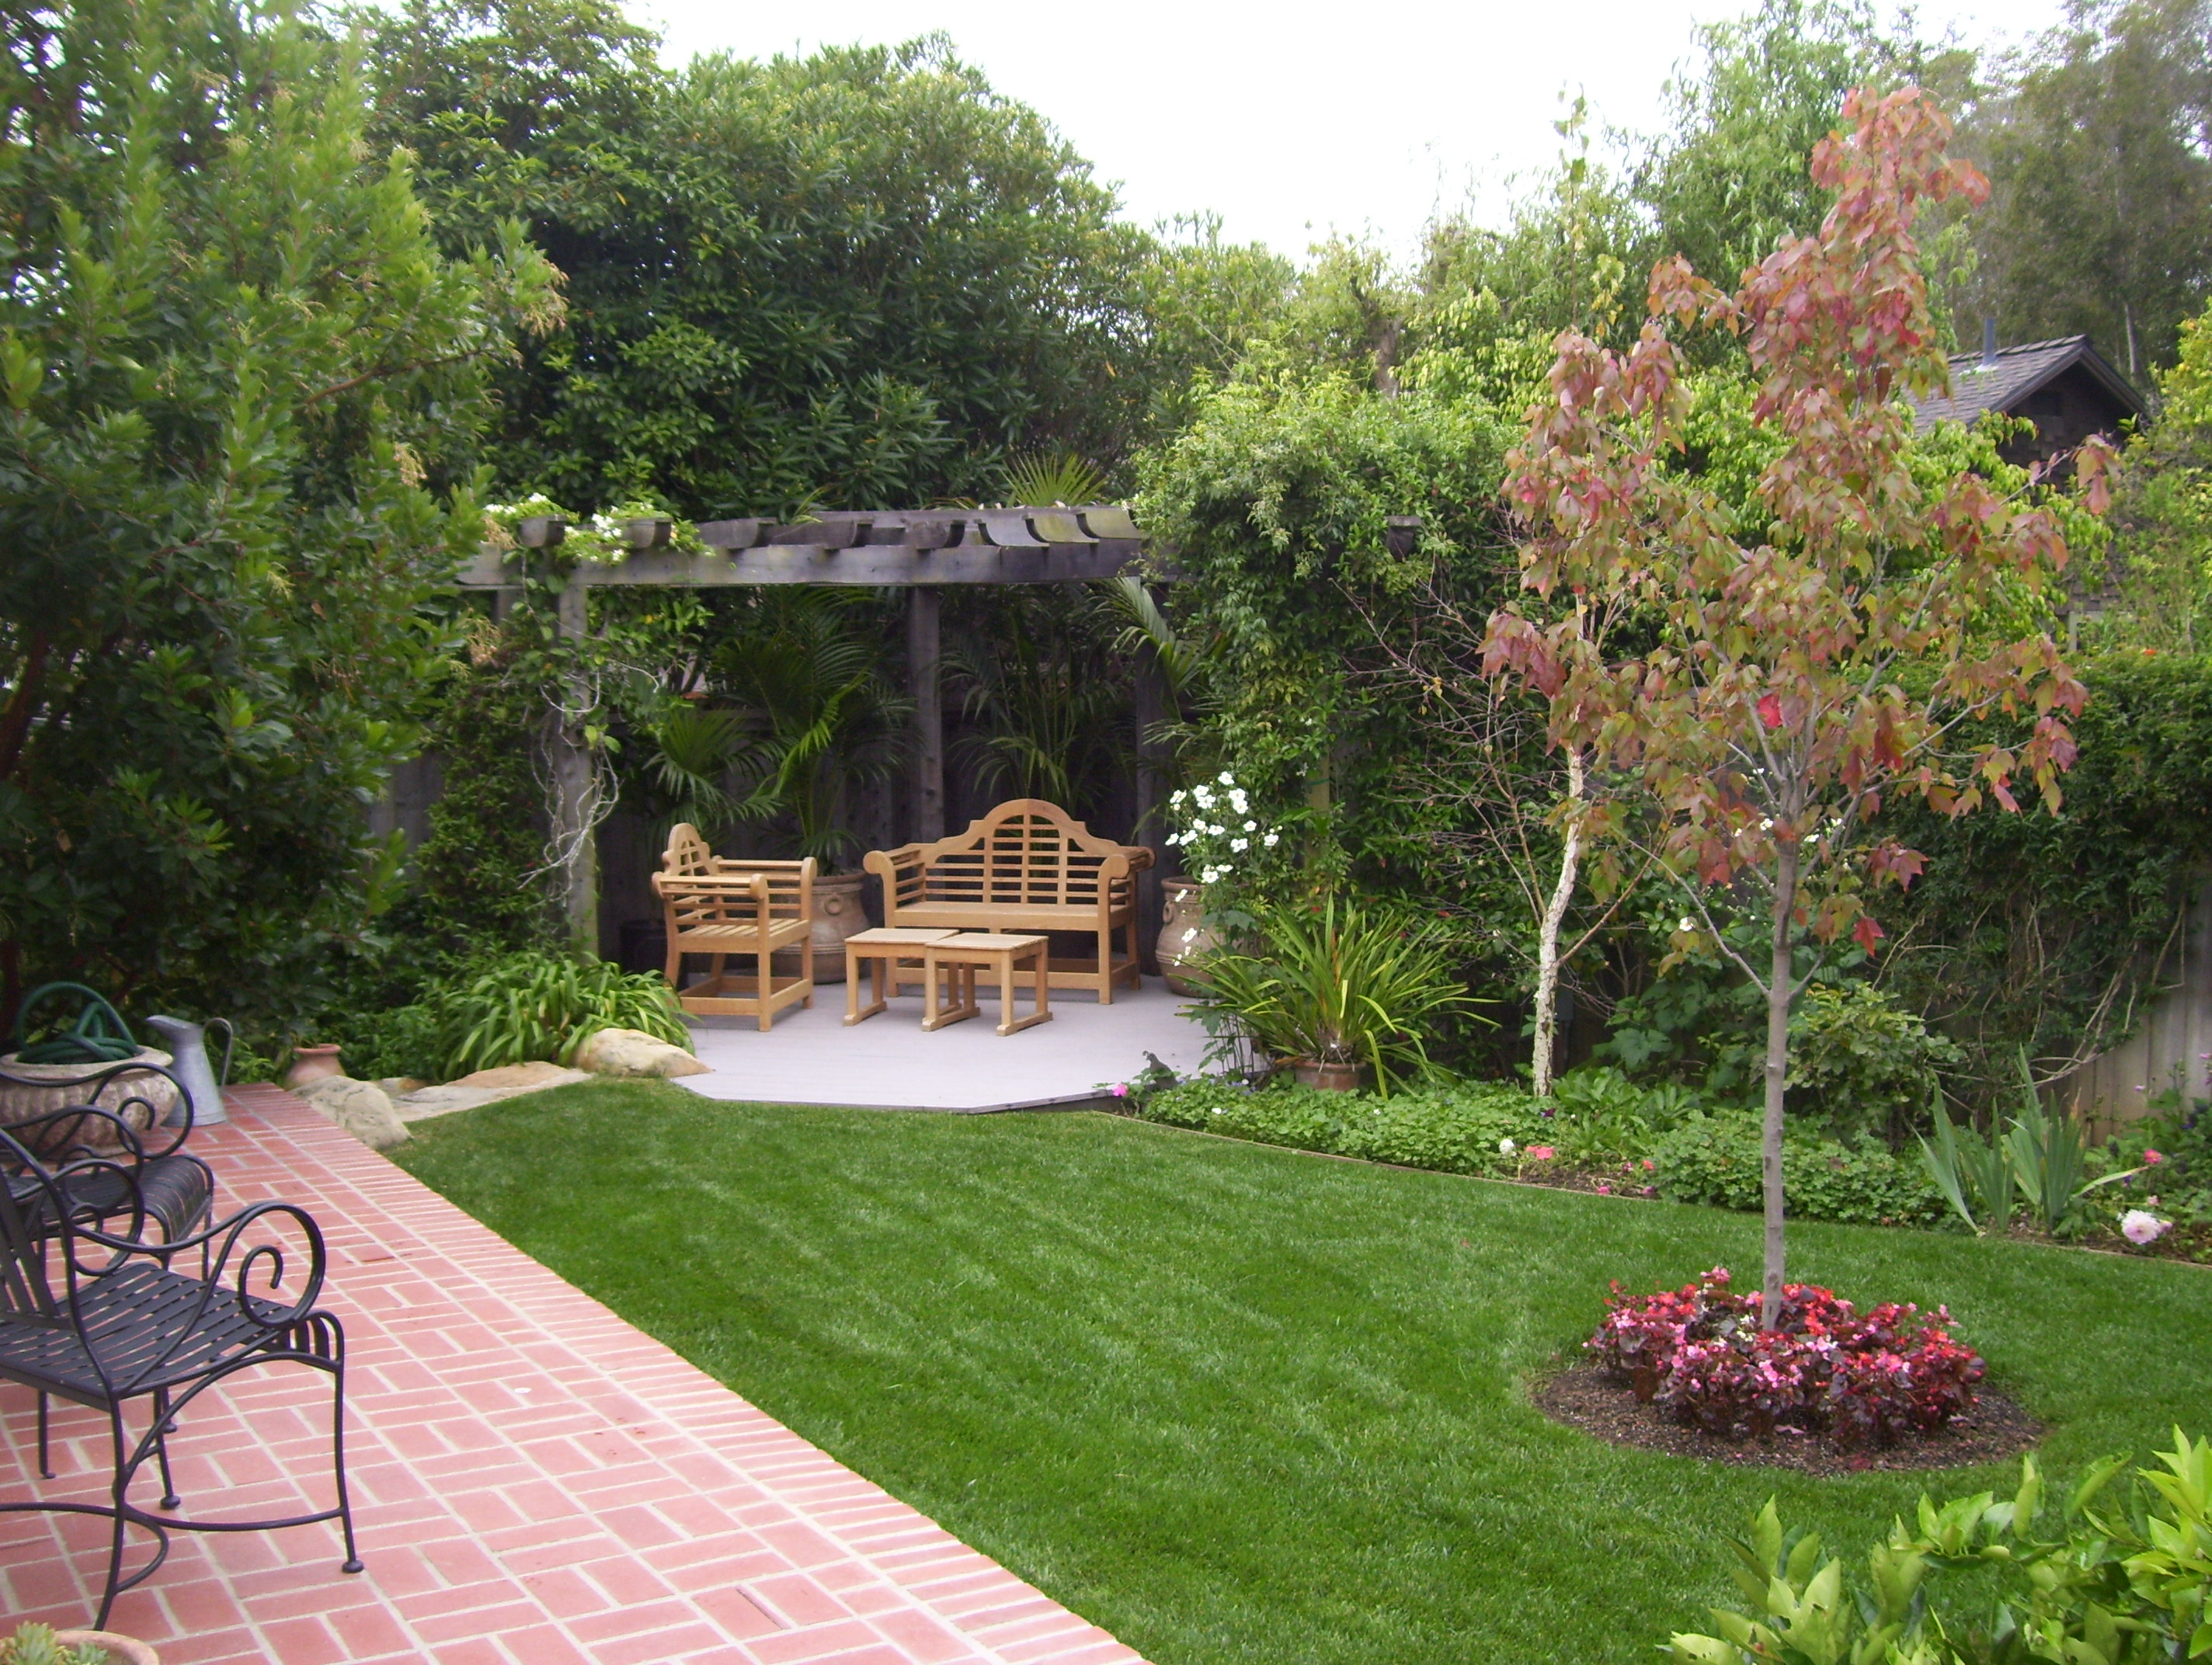 Backyard landscaping ideas santa barbara down to earth for Outdoor garden